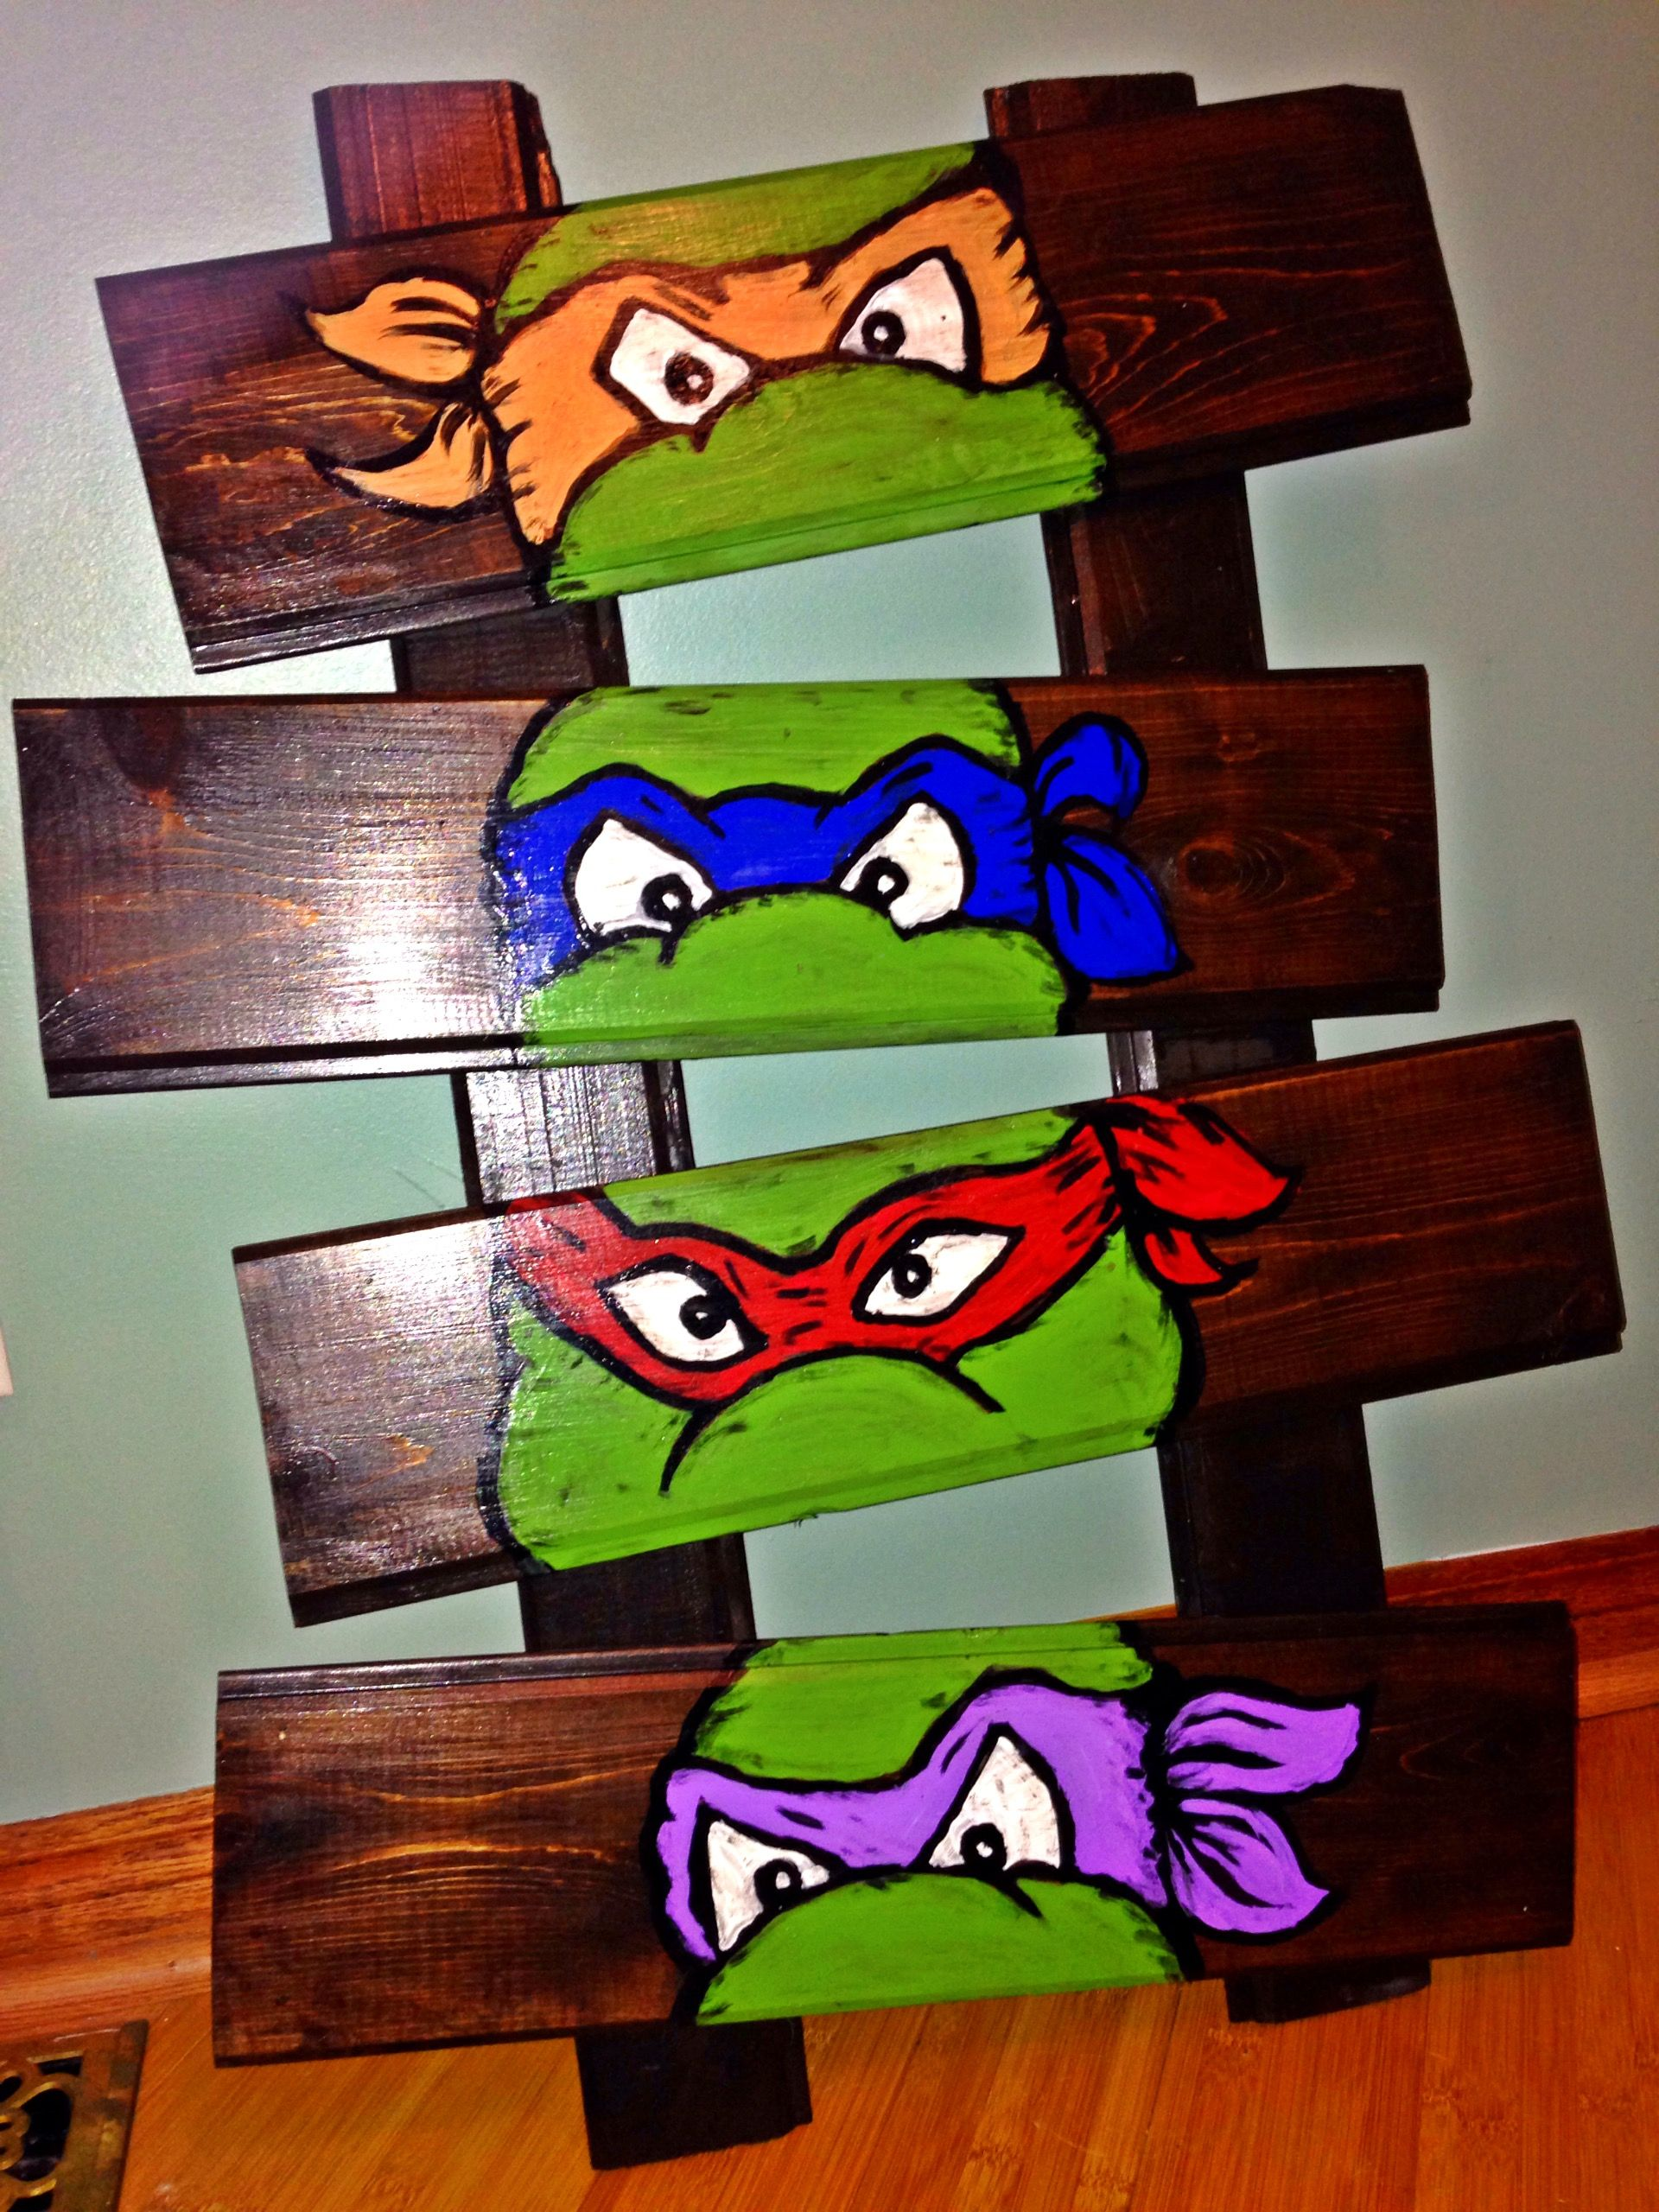 Stained The Boards Acrylic Paint For The Turtles